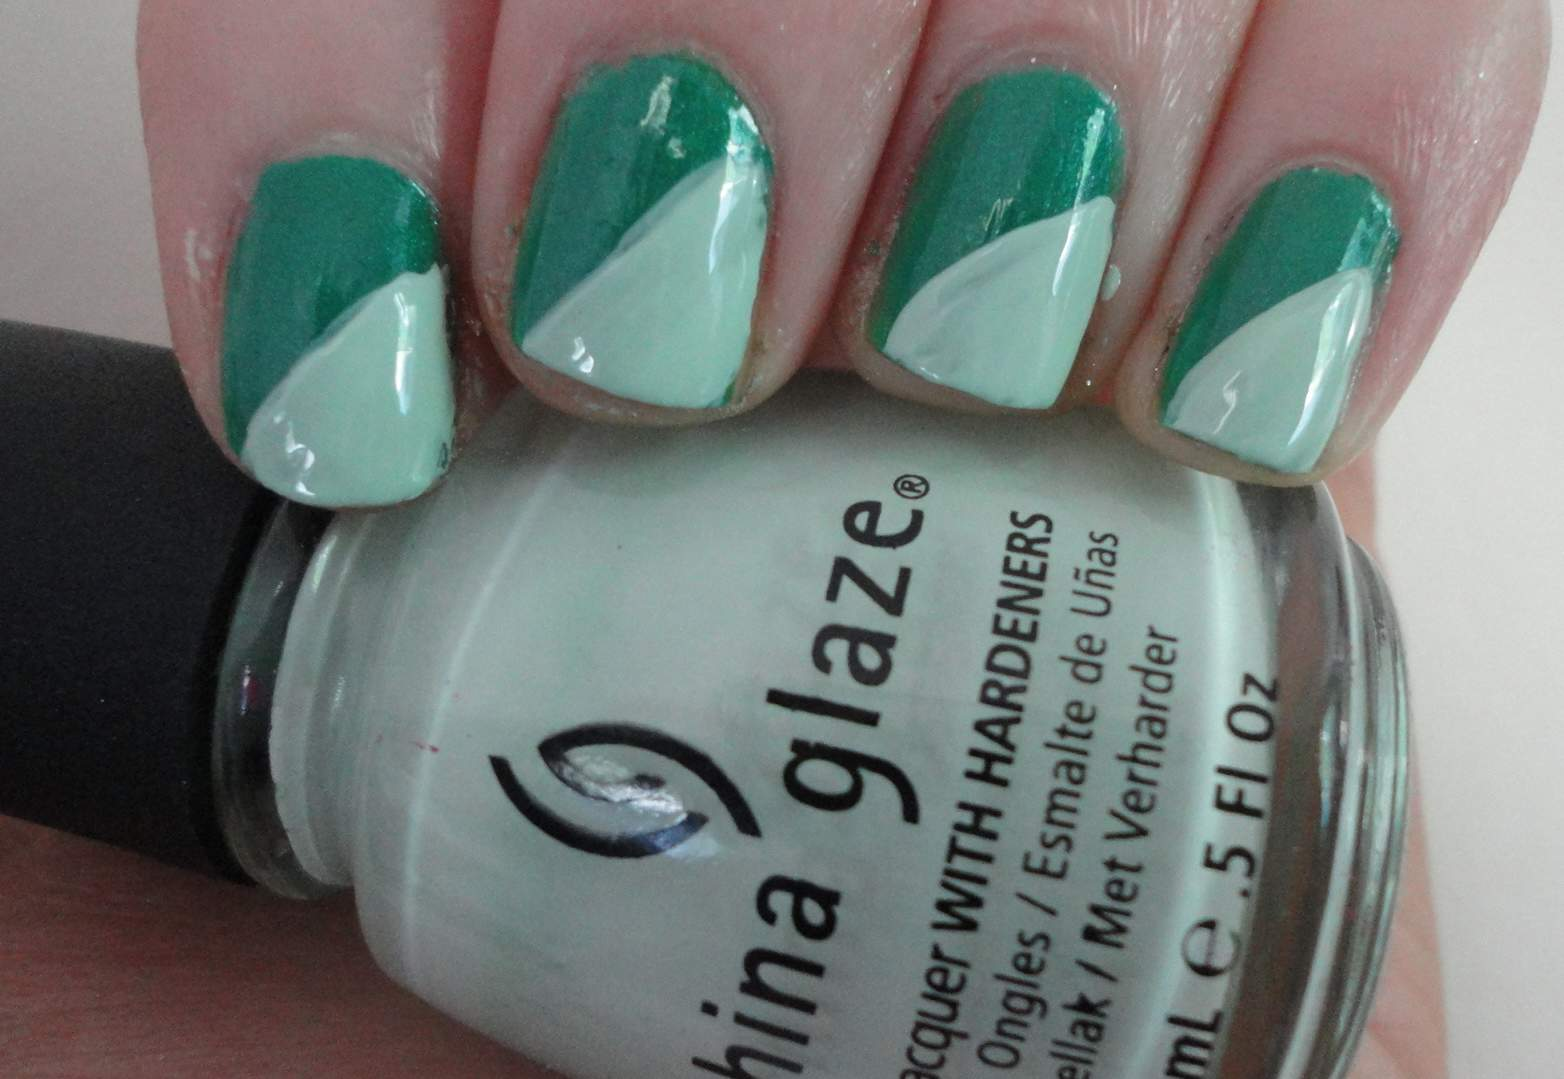 Nails for life criss cross nail art next apply another color and sweep the brush diagonally across the nail apply two coats for this just to make sure the polish doesnt look streaky prinsesfo Gallery